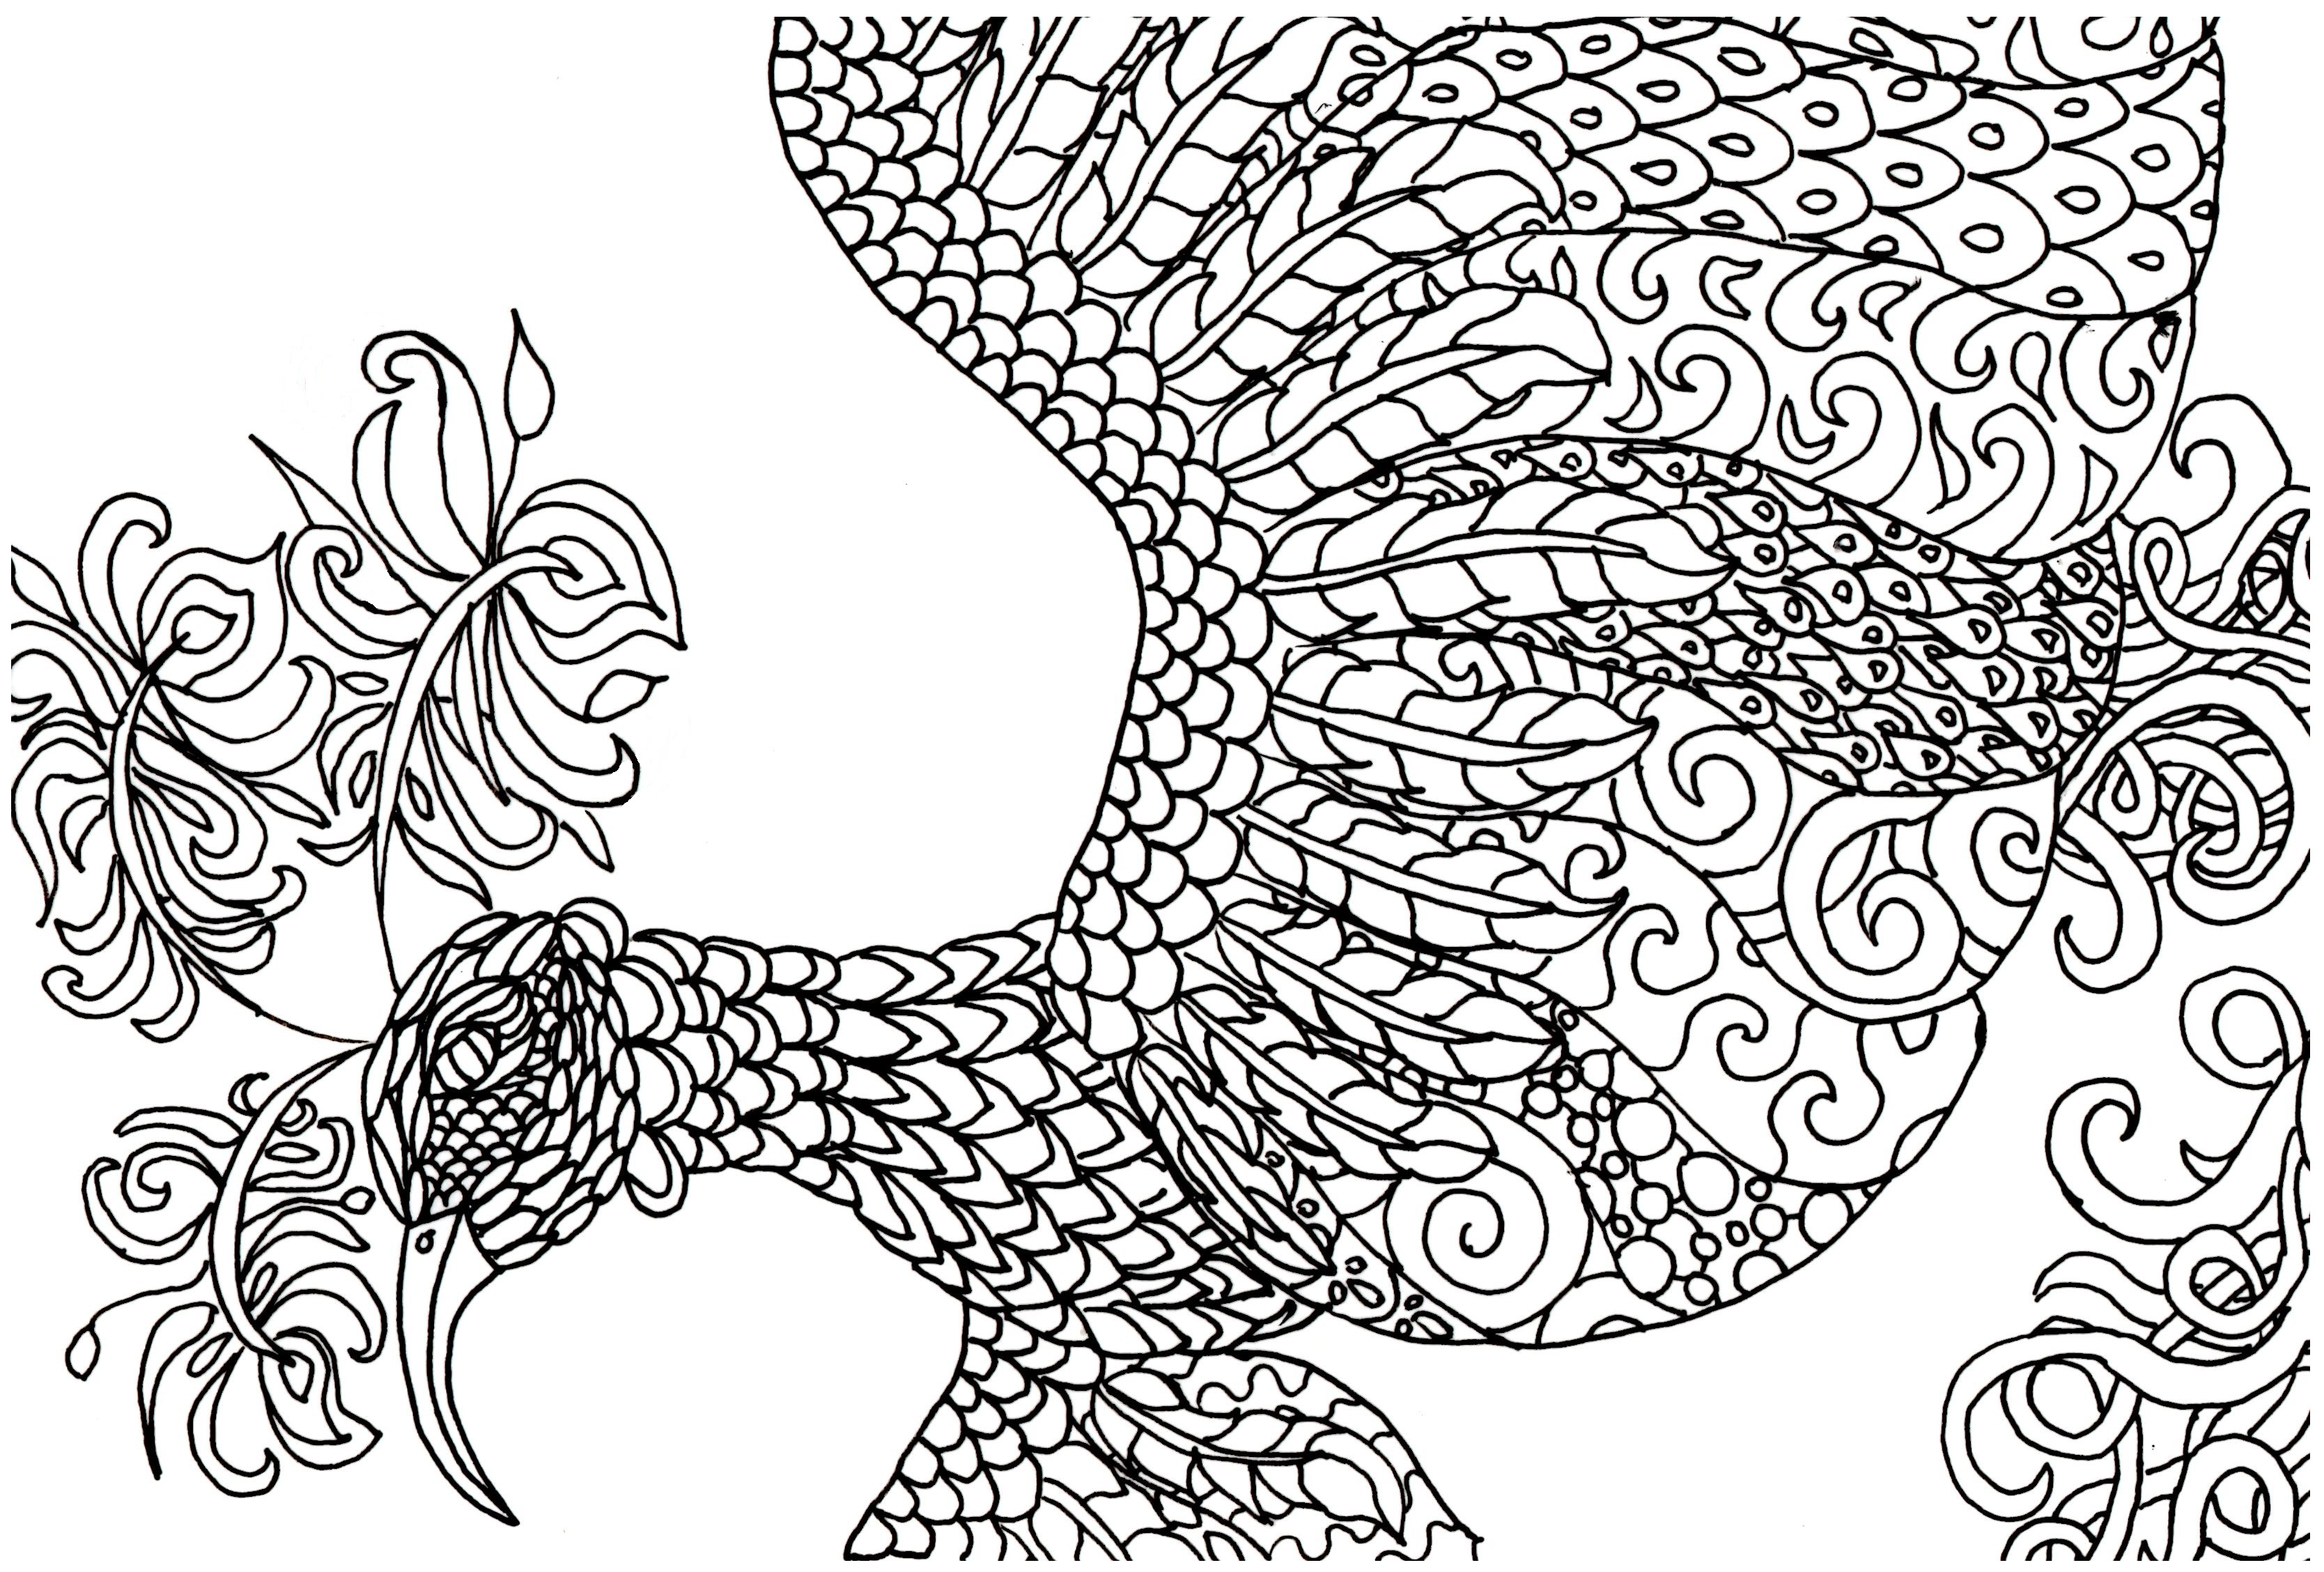 FREE Adult Coloring Book Page Fantasy Bird